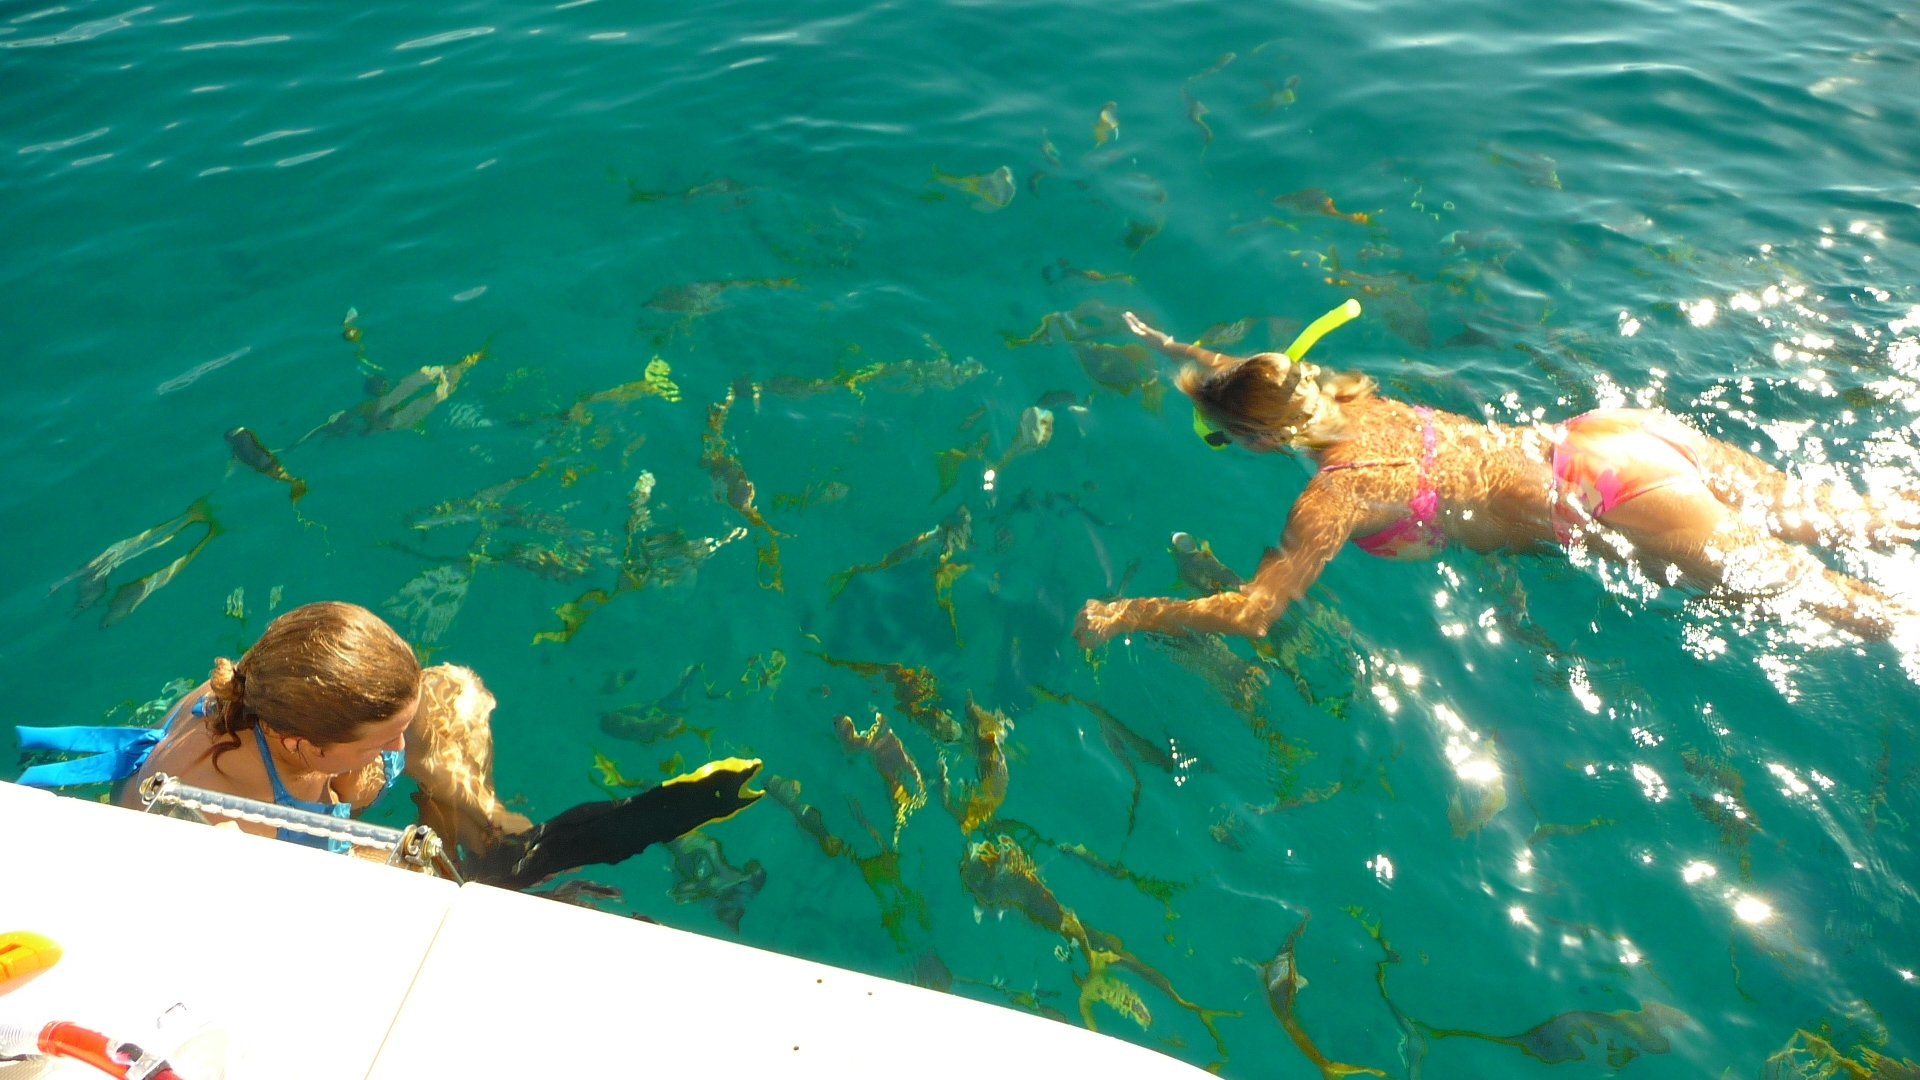 Our personalized charters include snorkel equipment and instruction for beginner and advanced.  We take you to the best spots and put you right on colorful fish and turtles for the perfect experience.